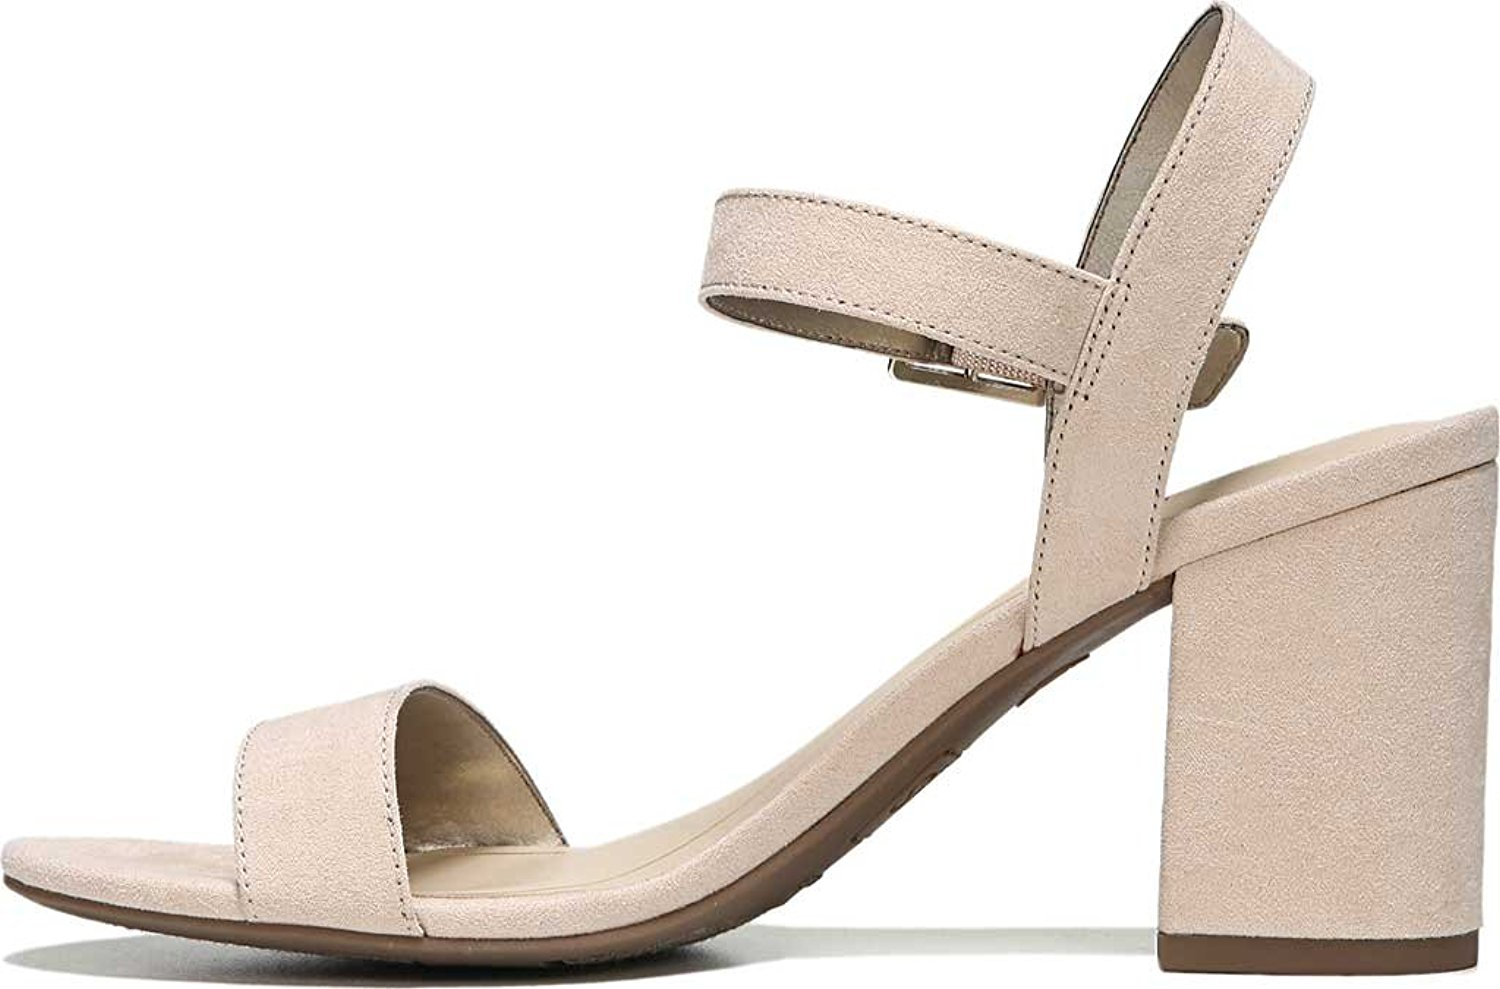 a6494c0c89b1 Circus by Sam Edelman Ashton Womens Heeled Sandals Soft Nude 10 US ...